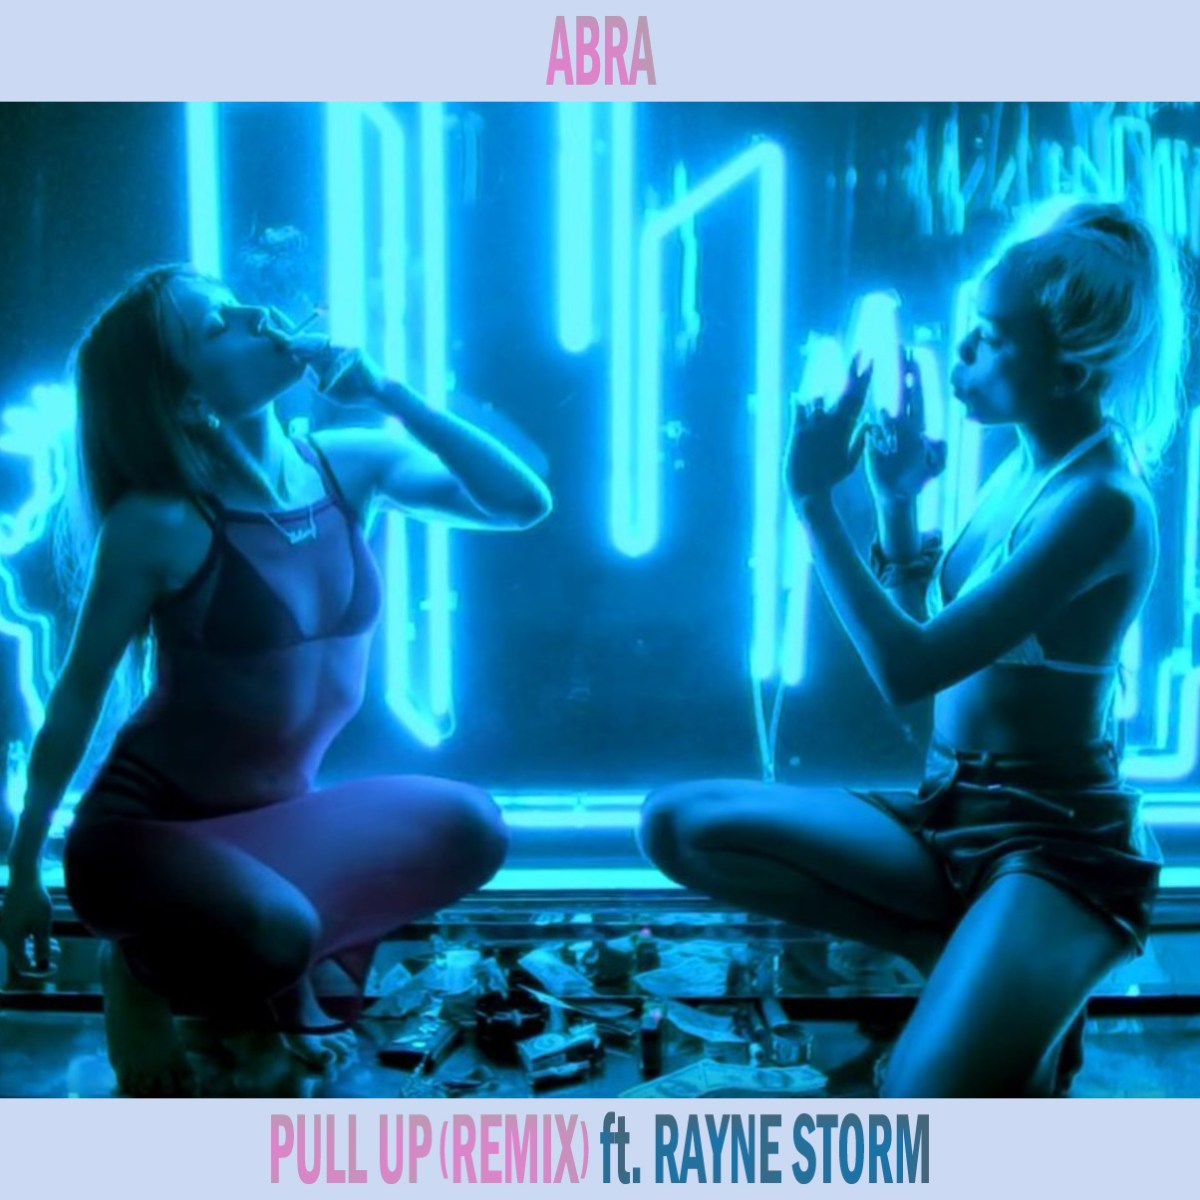 ABRA - Pull Up (Remix) ft. Rayne Storm